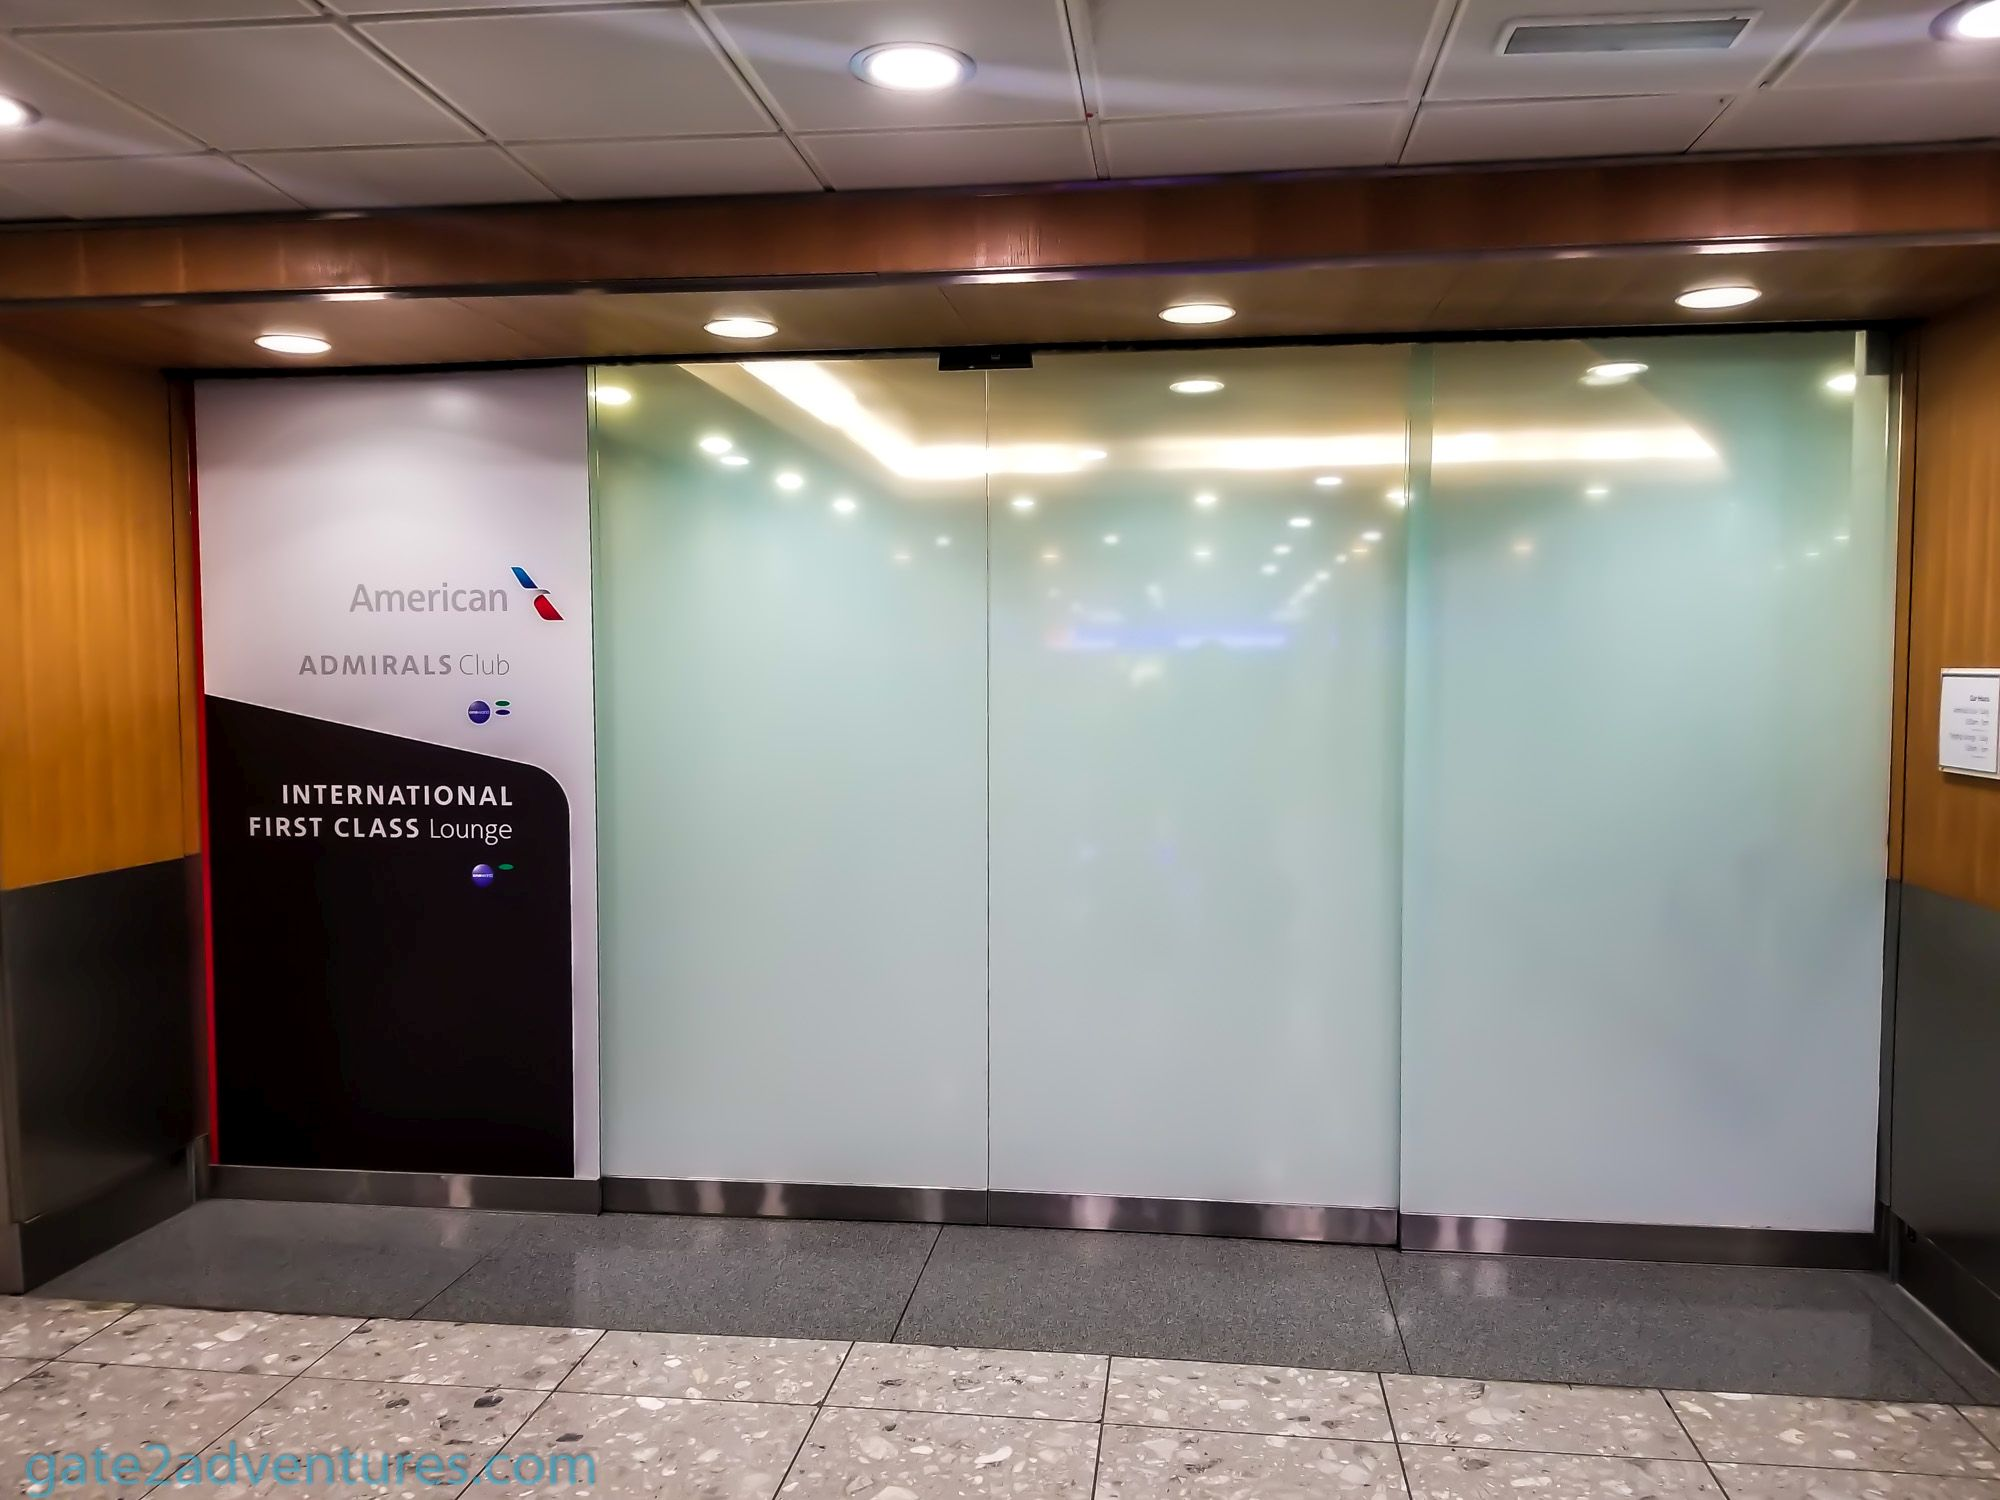 American Airlines International First Class Lounge London Heathrow